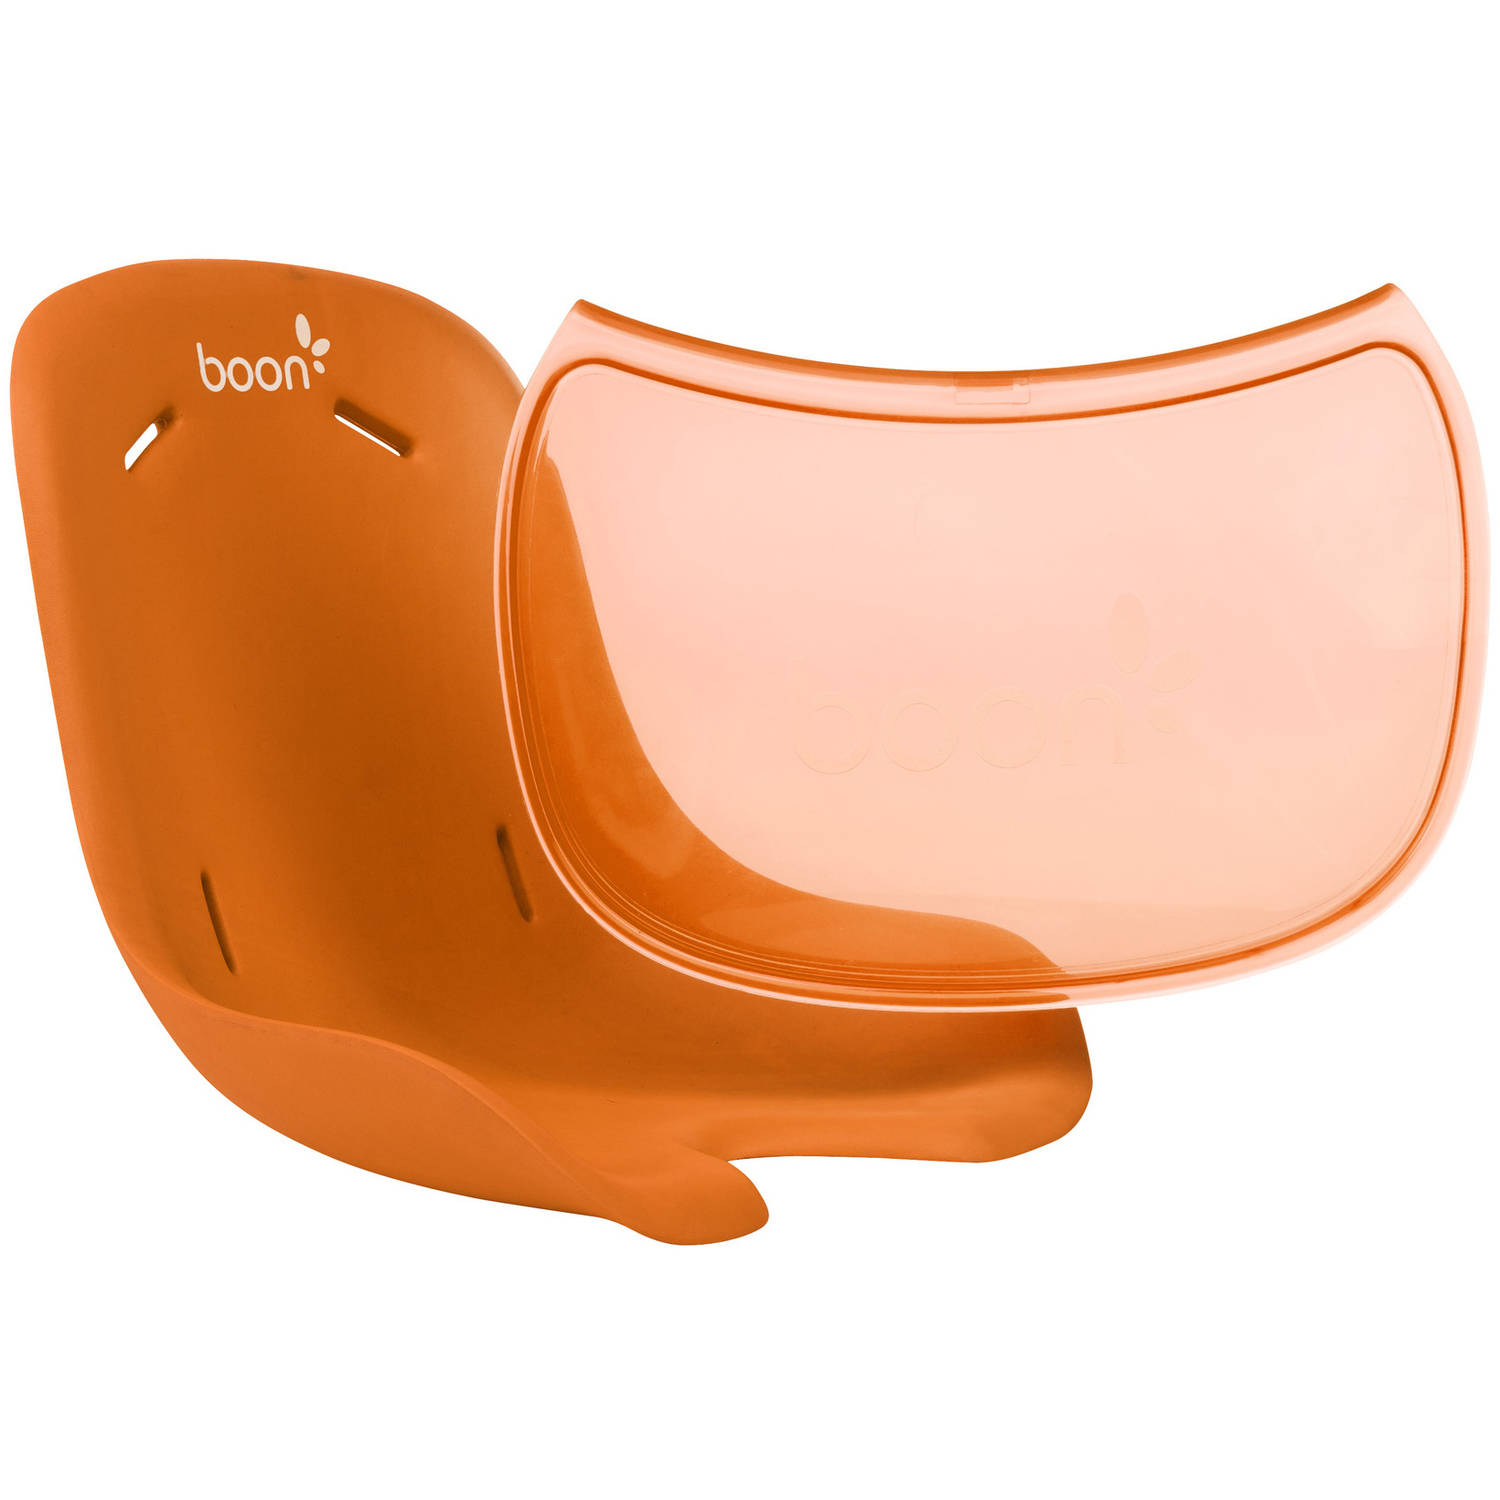 Boon Flair Seat Pad & Tray Liner Combo, Orange